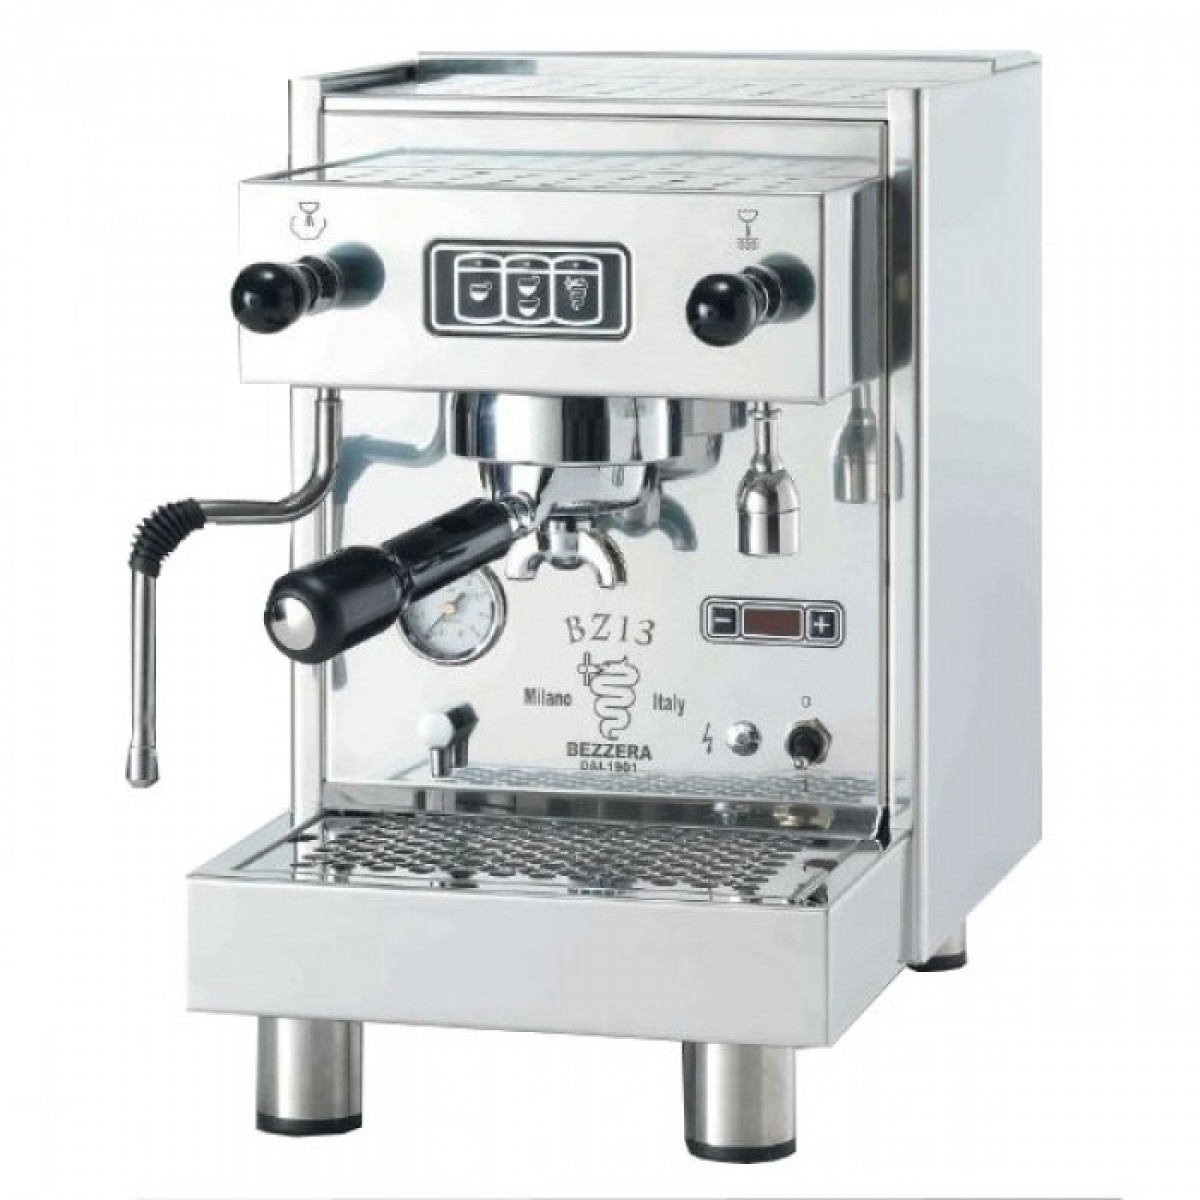 Coffee machine Bezzera BZ13 DE PID, electronic dosing, water tank, vibration pump, double manometer